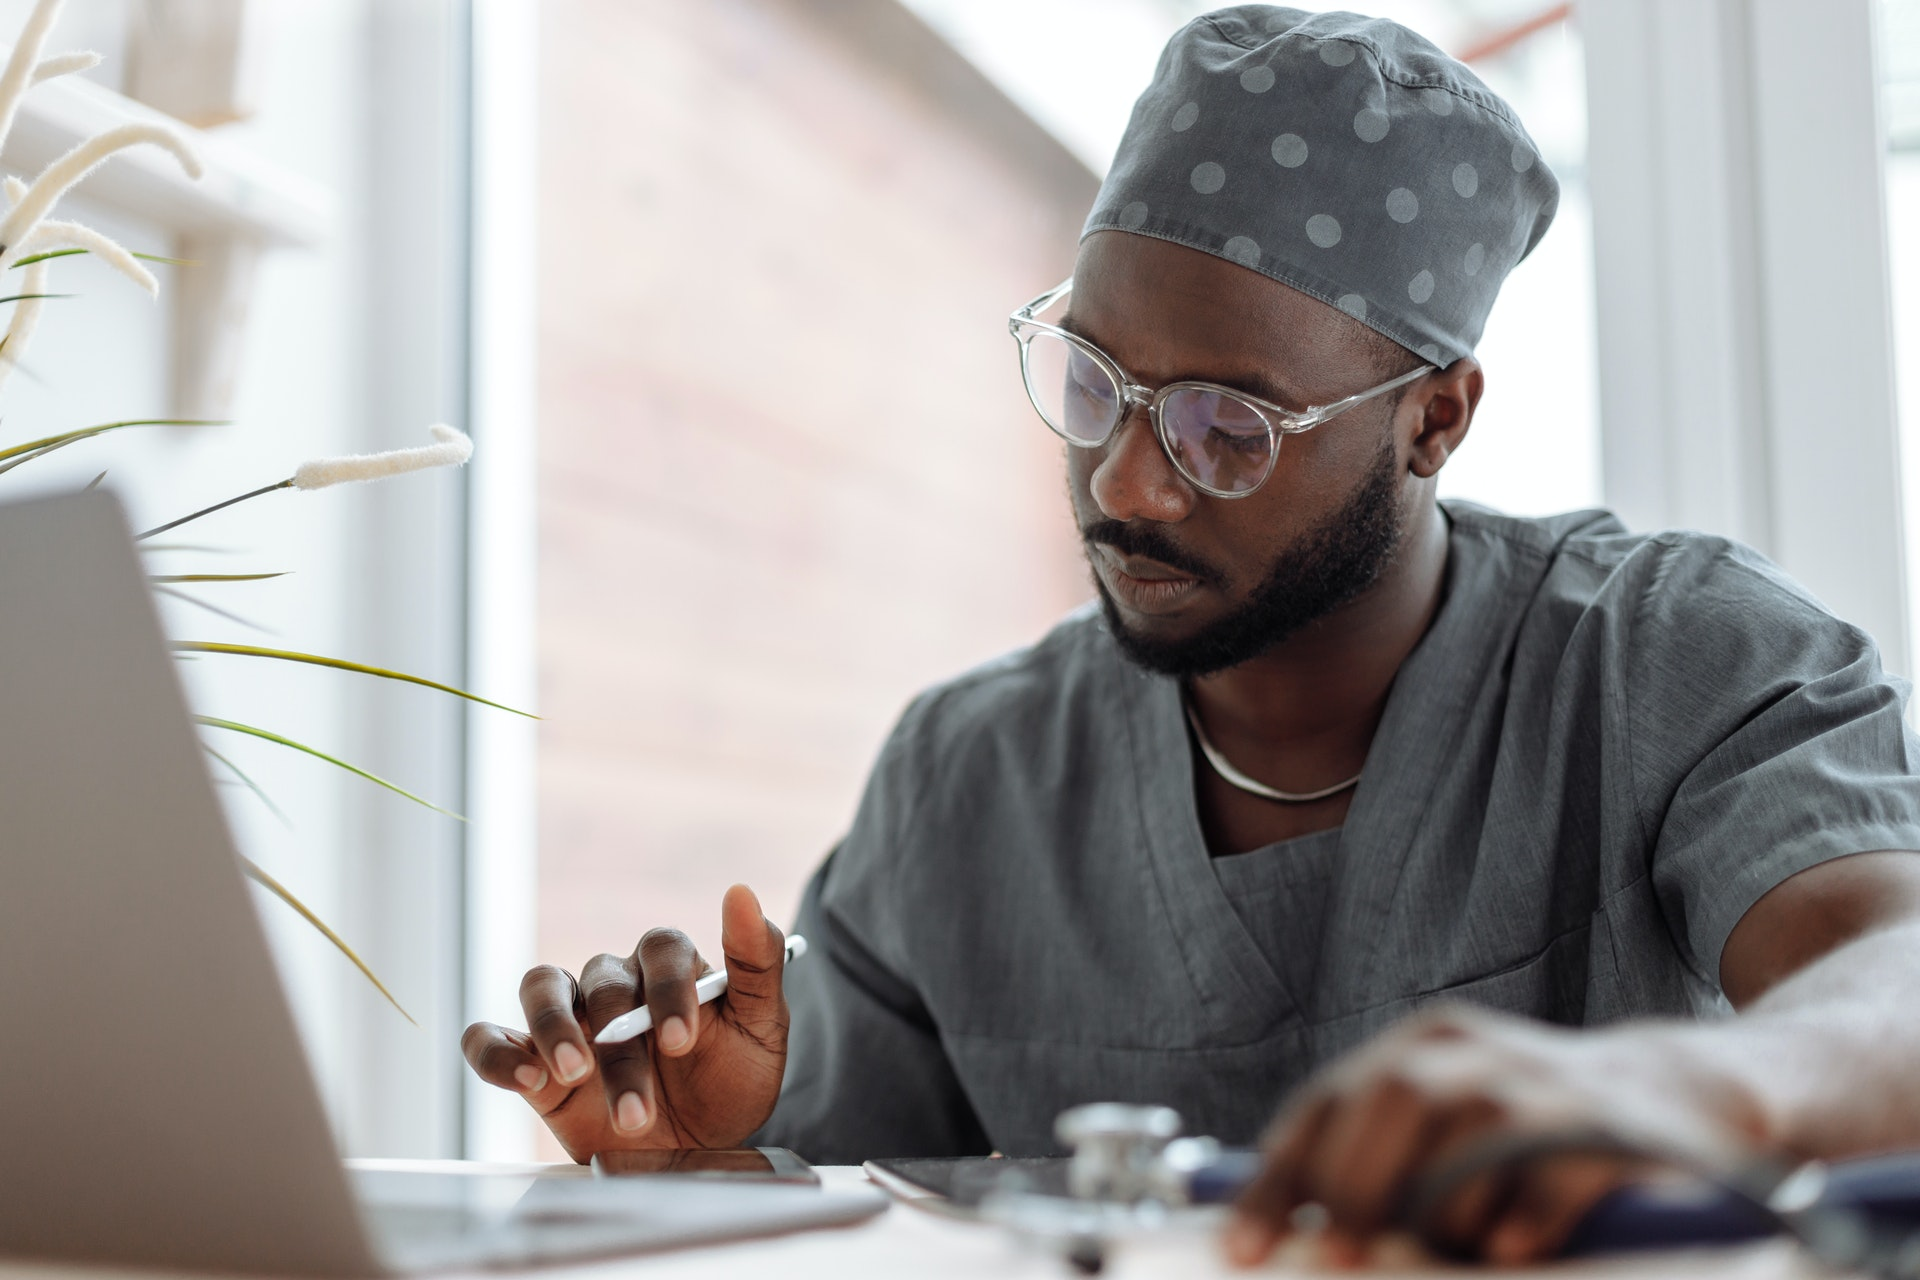 Image of a doctor working on a computer